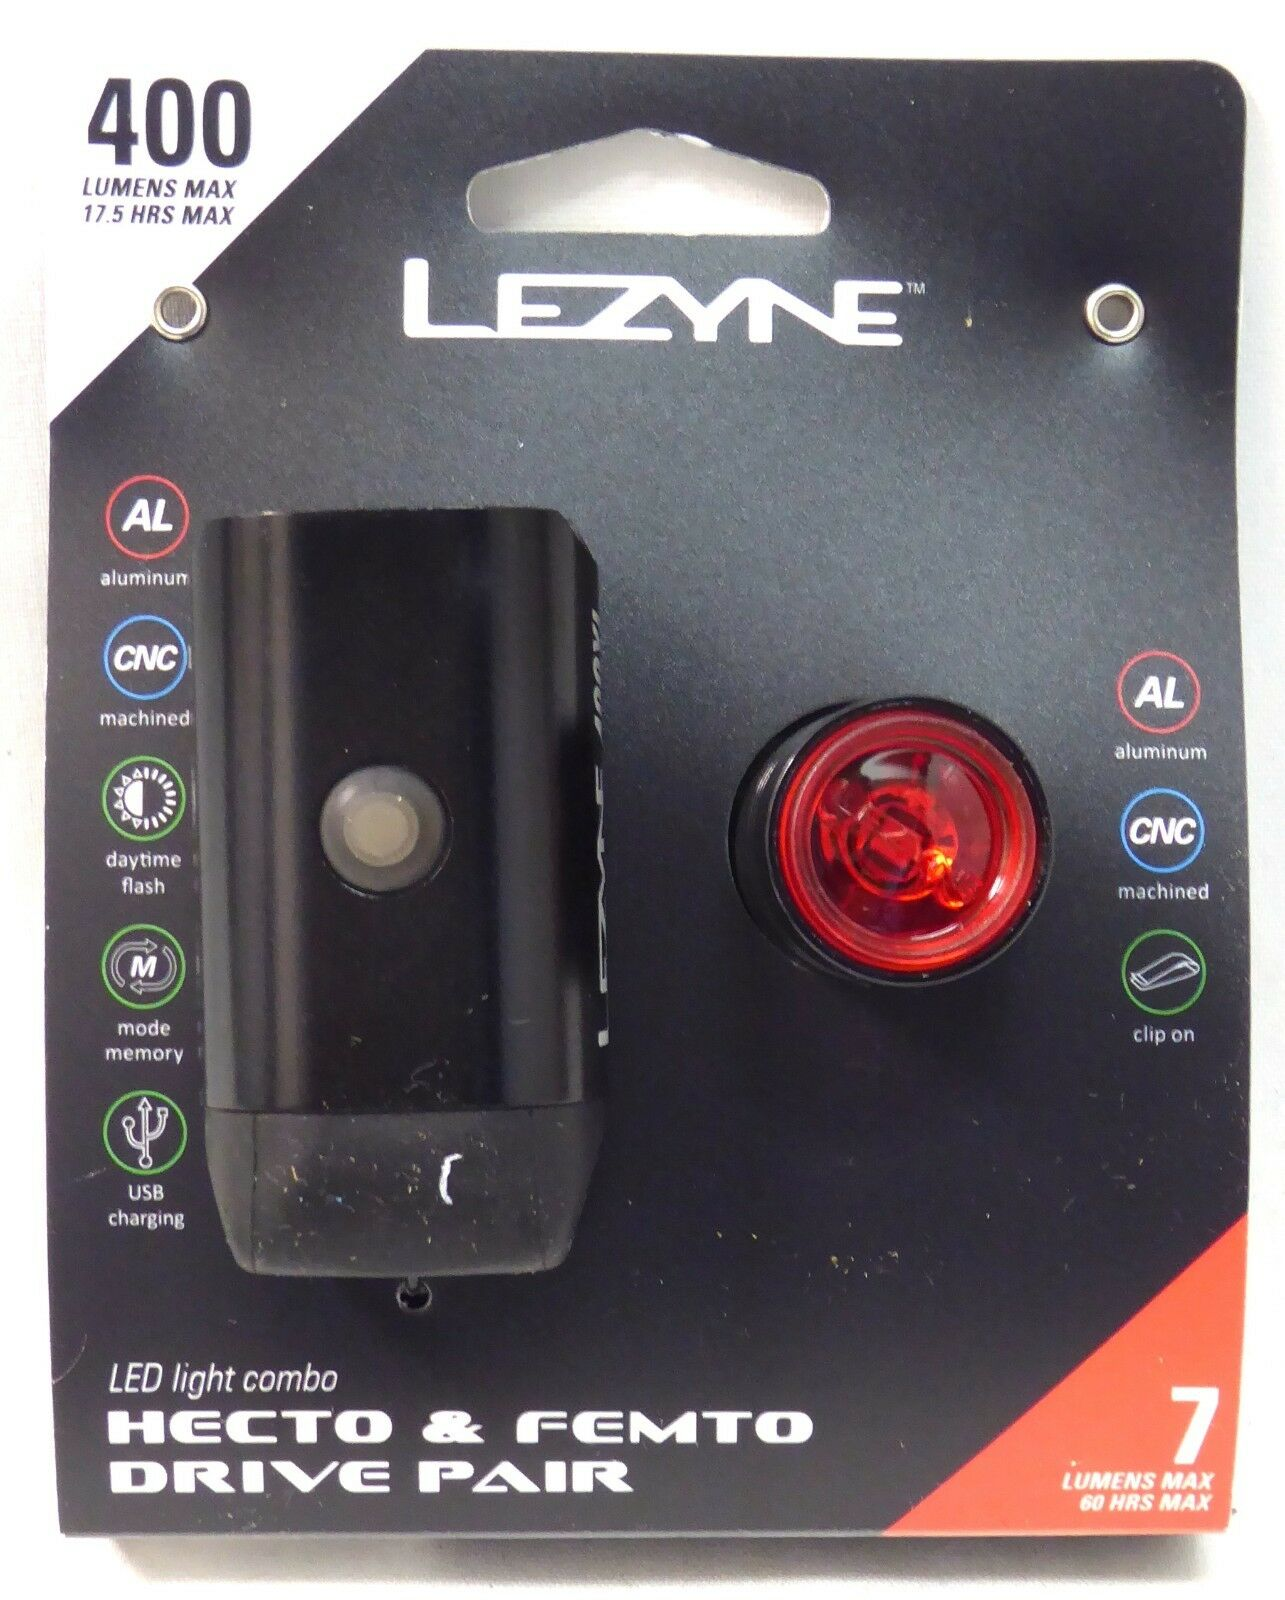 Lezyne Hecto 400XL and  Femto Drive Pair Front Rear  good quality